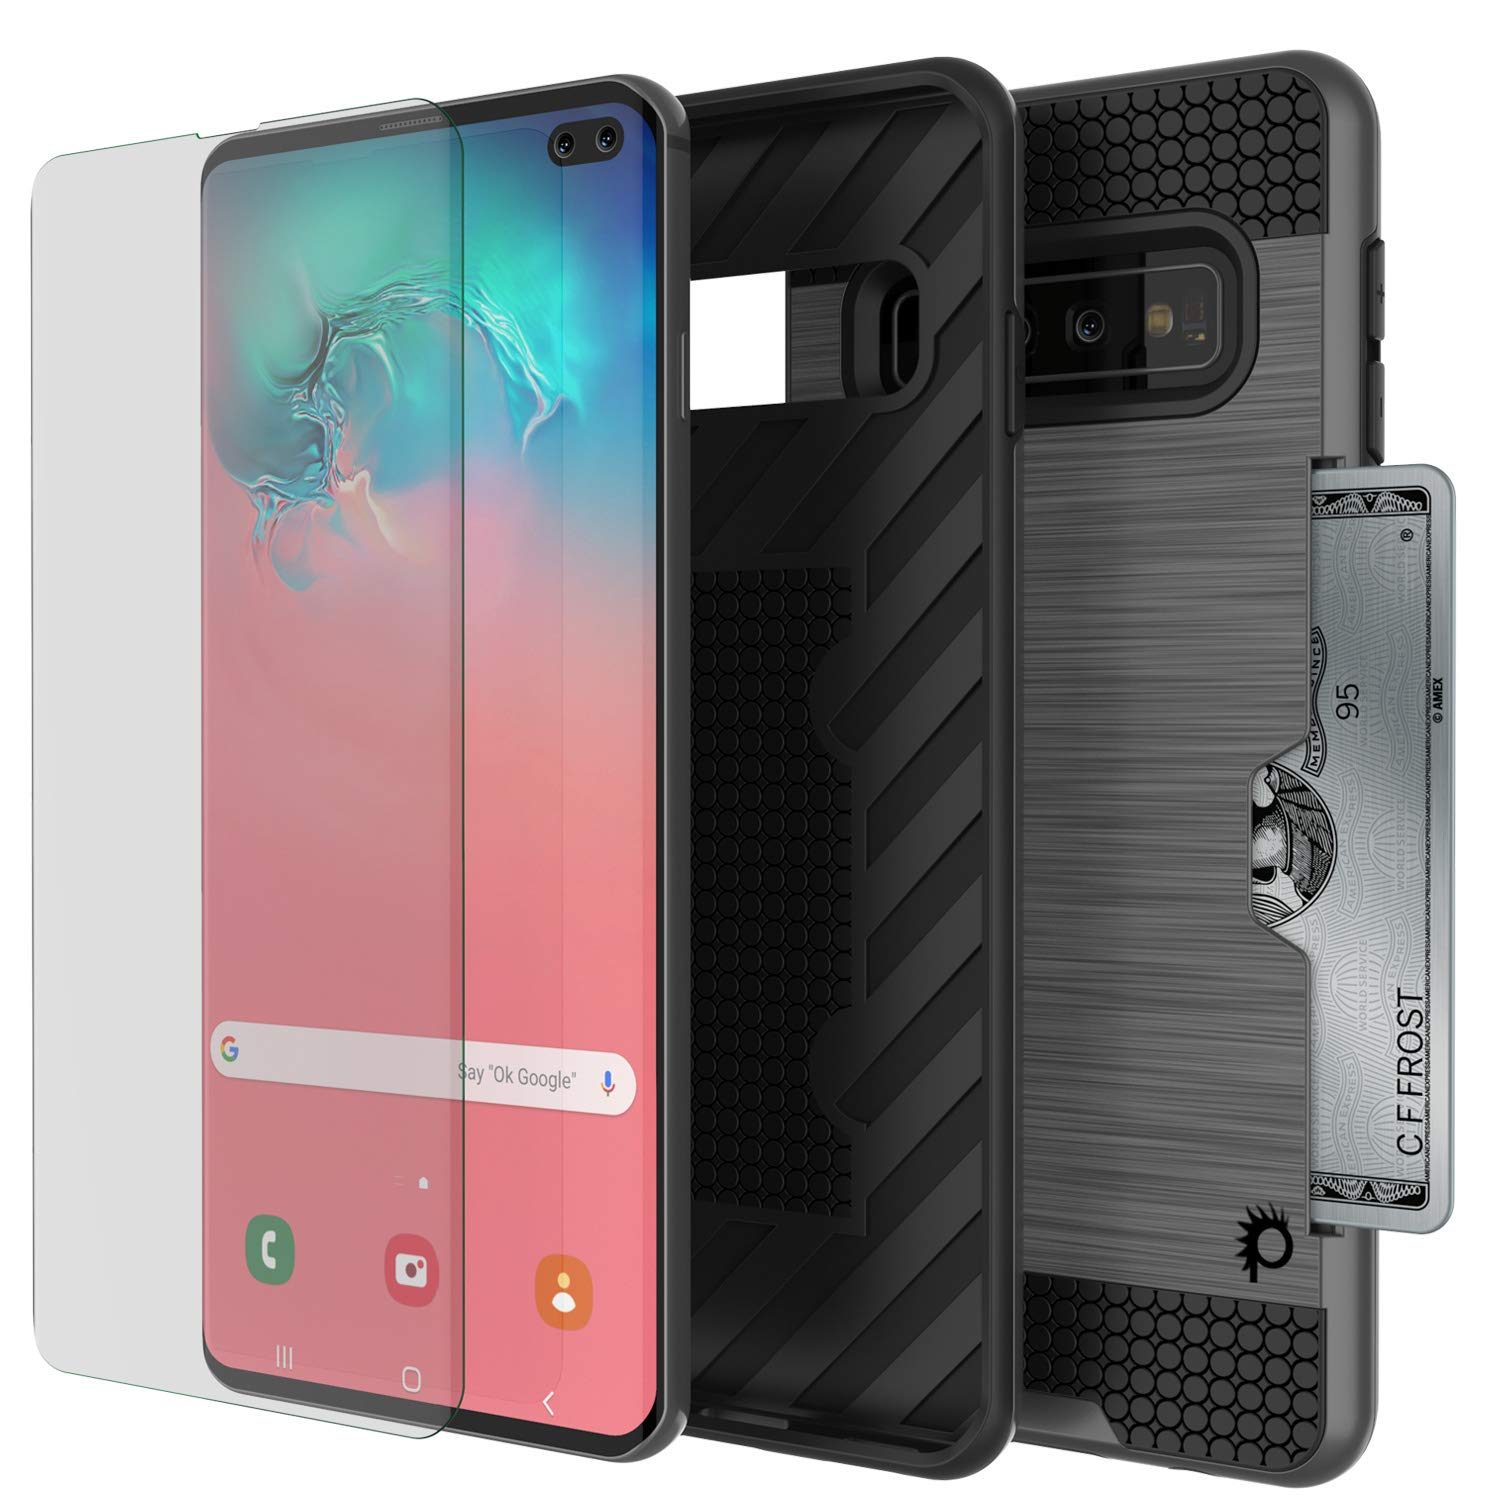 PunkCase S10 Plus Case [Slot Series] [Slim Fit] Dual-Layer Armor Cover w/Integrated Anti-Shock System, Credit Card Slot & PUNKSHIELD Screen Protector Compatible W/Samsung Galaxy S10 Plus [Grey]